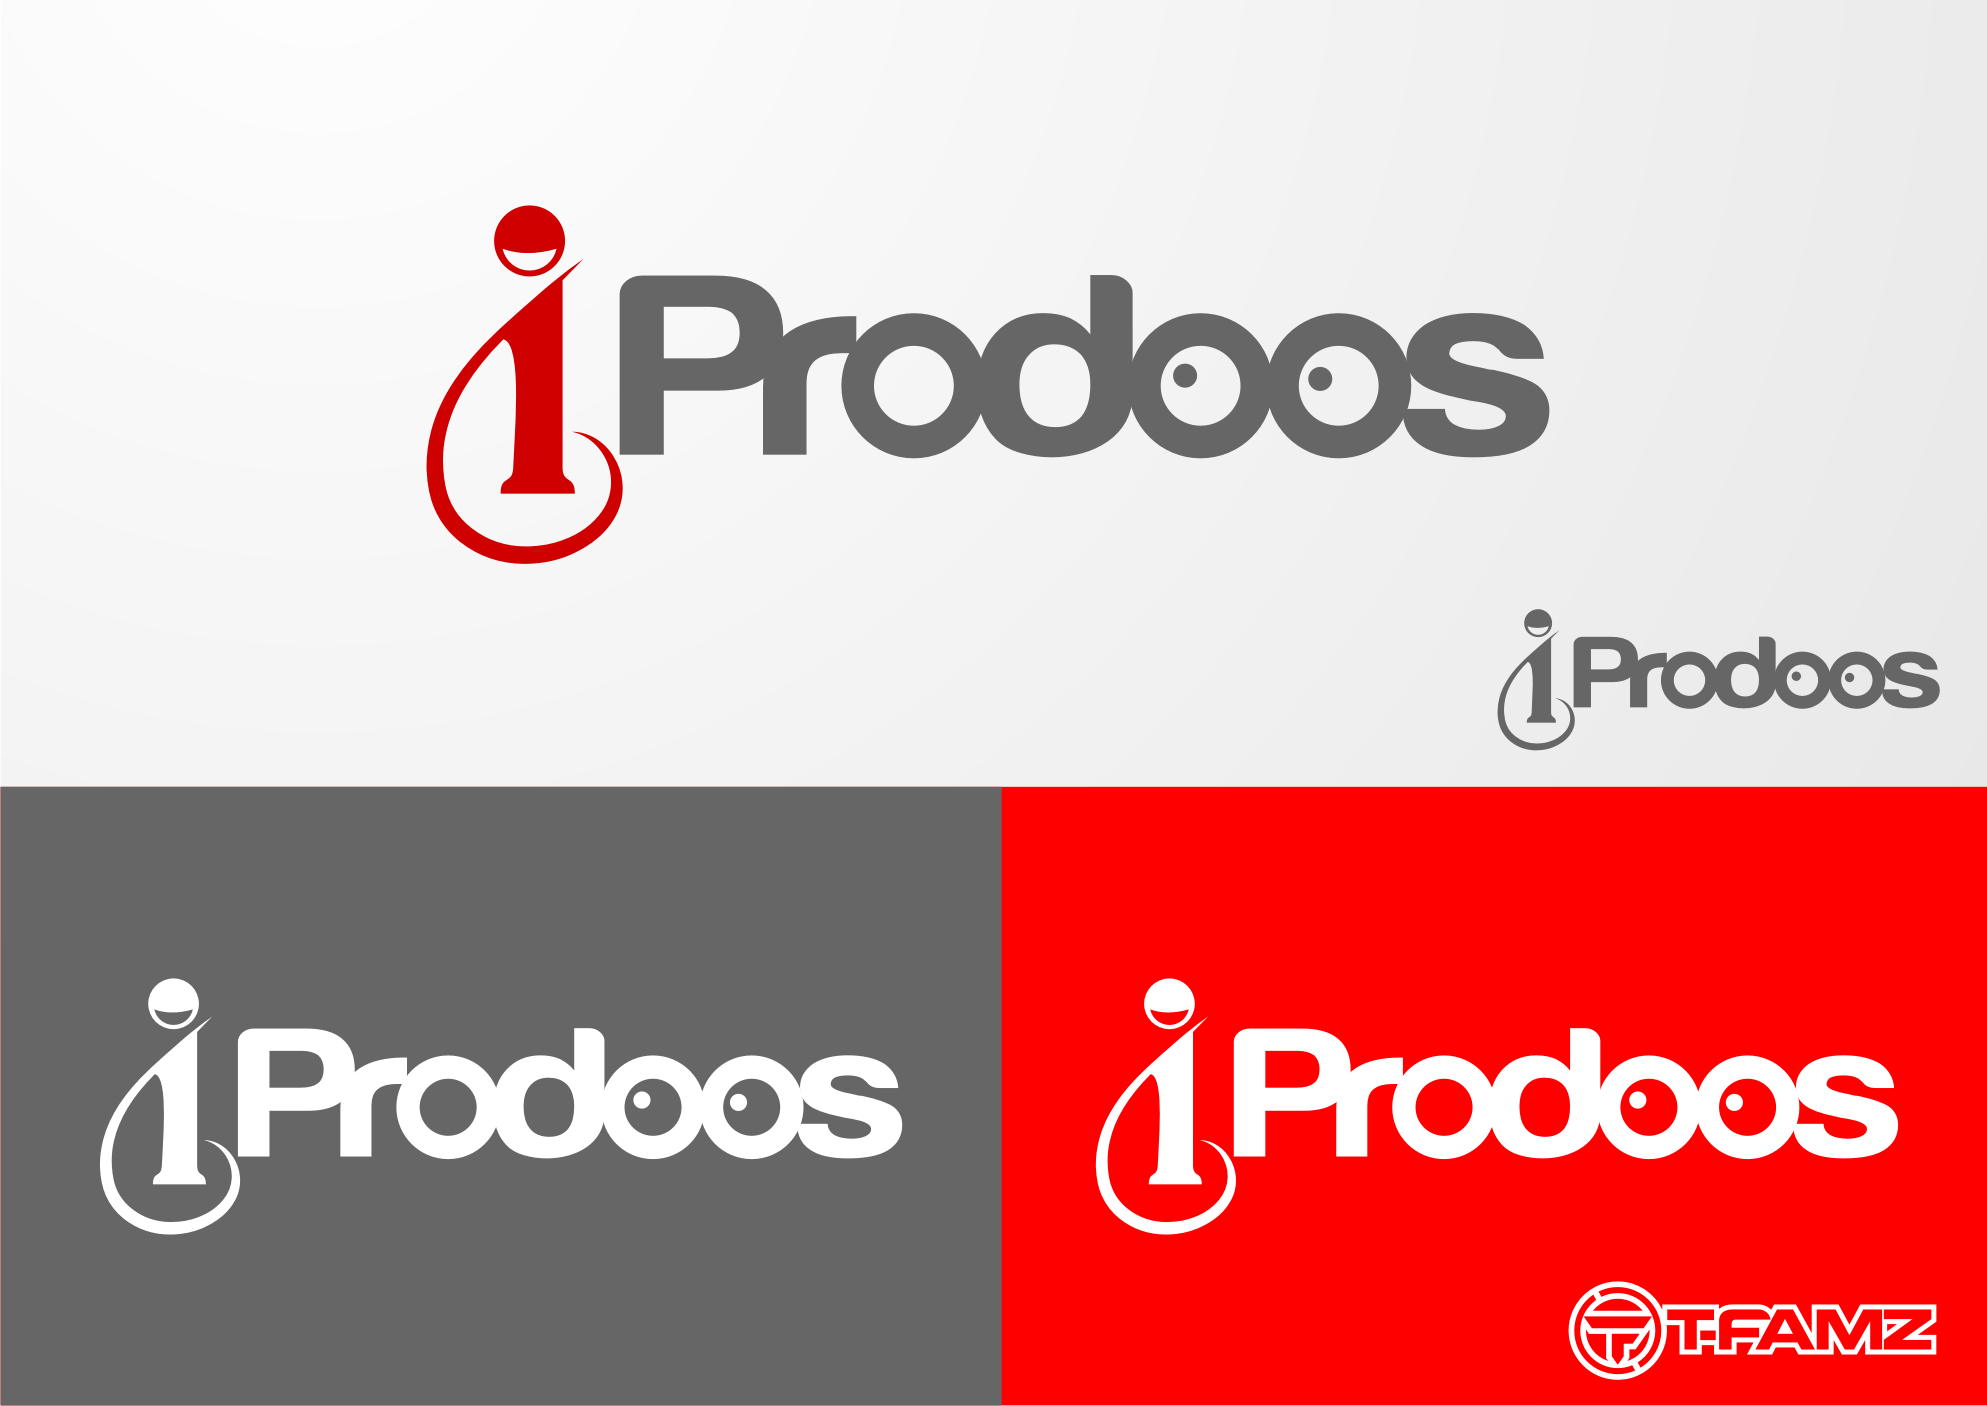 Logo Design by Tille Famz - Entry No. 12 in the Logo Design Contest New Logo Design for iProdoos.